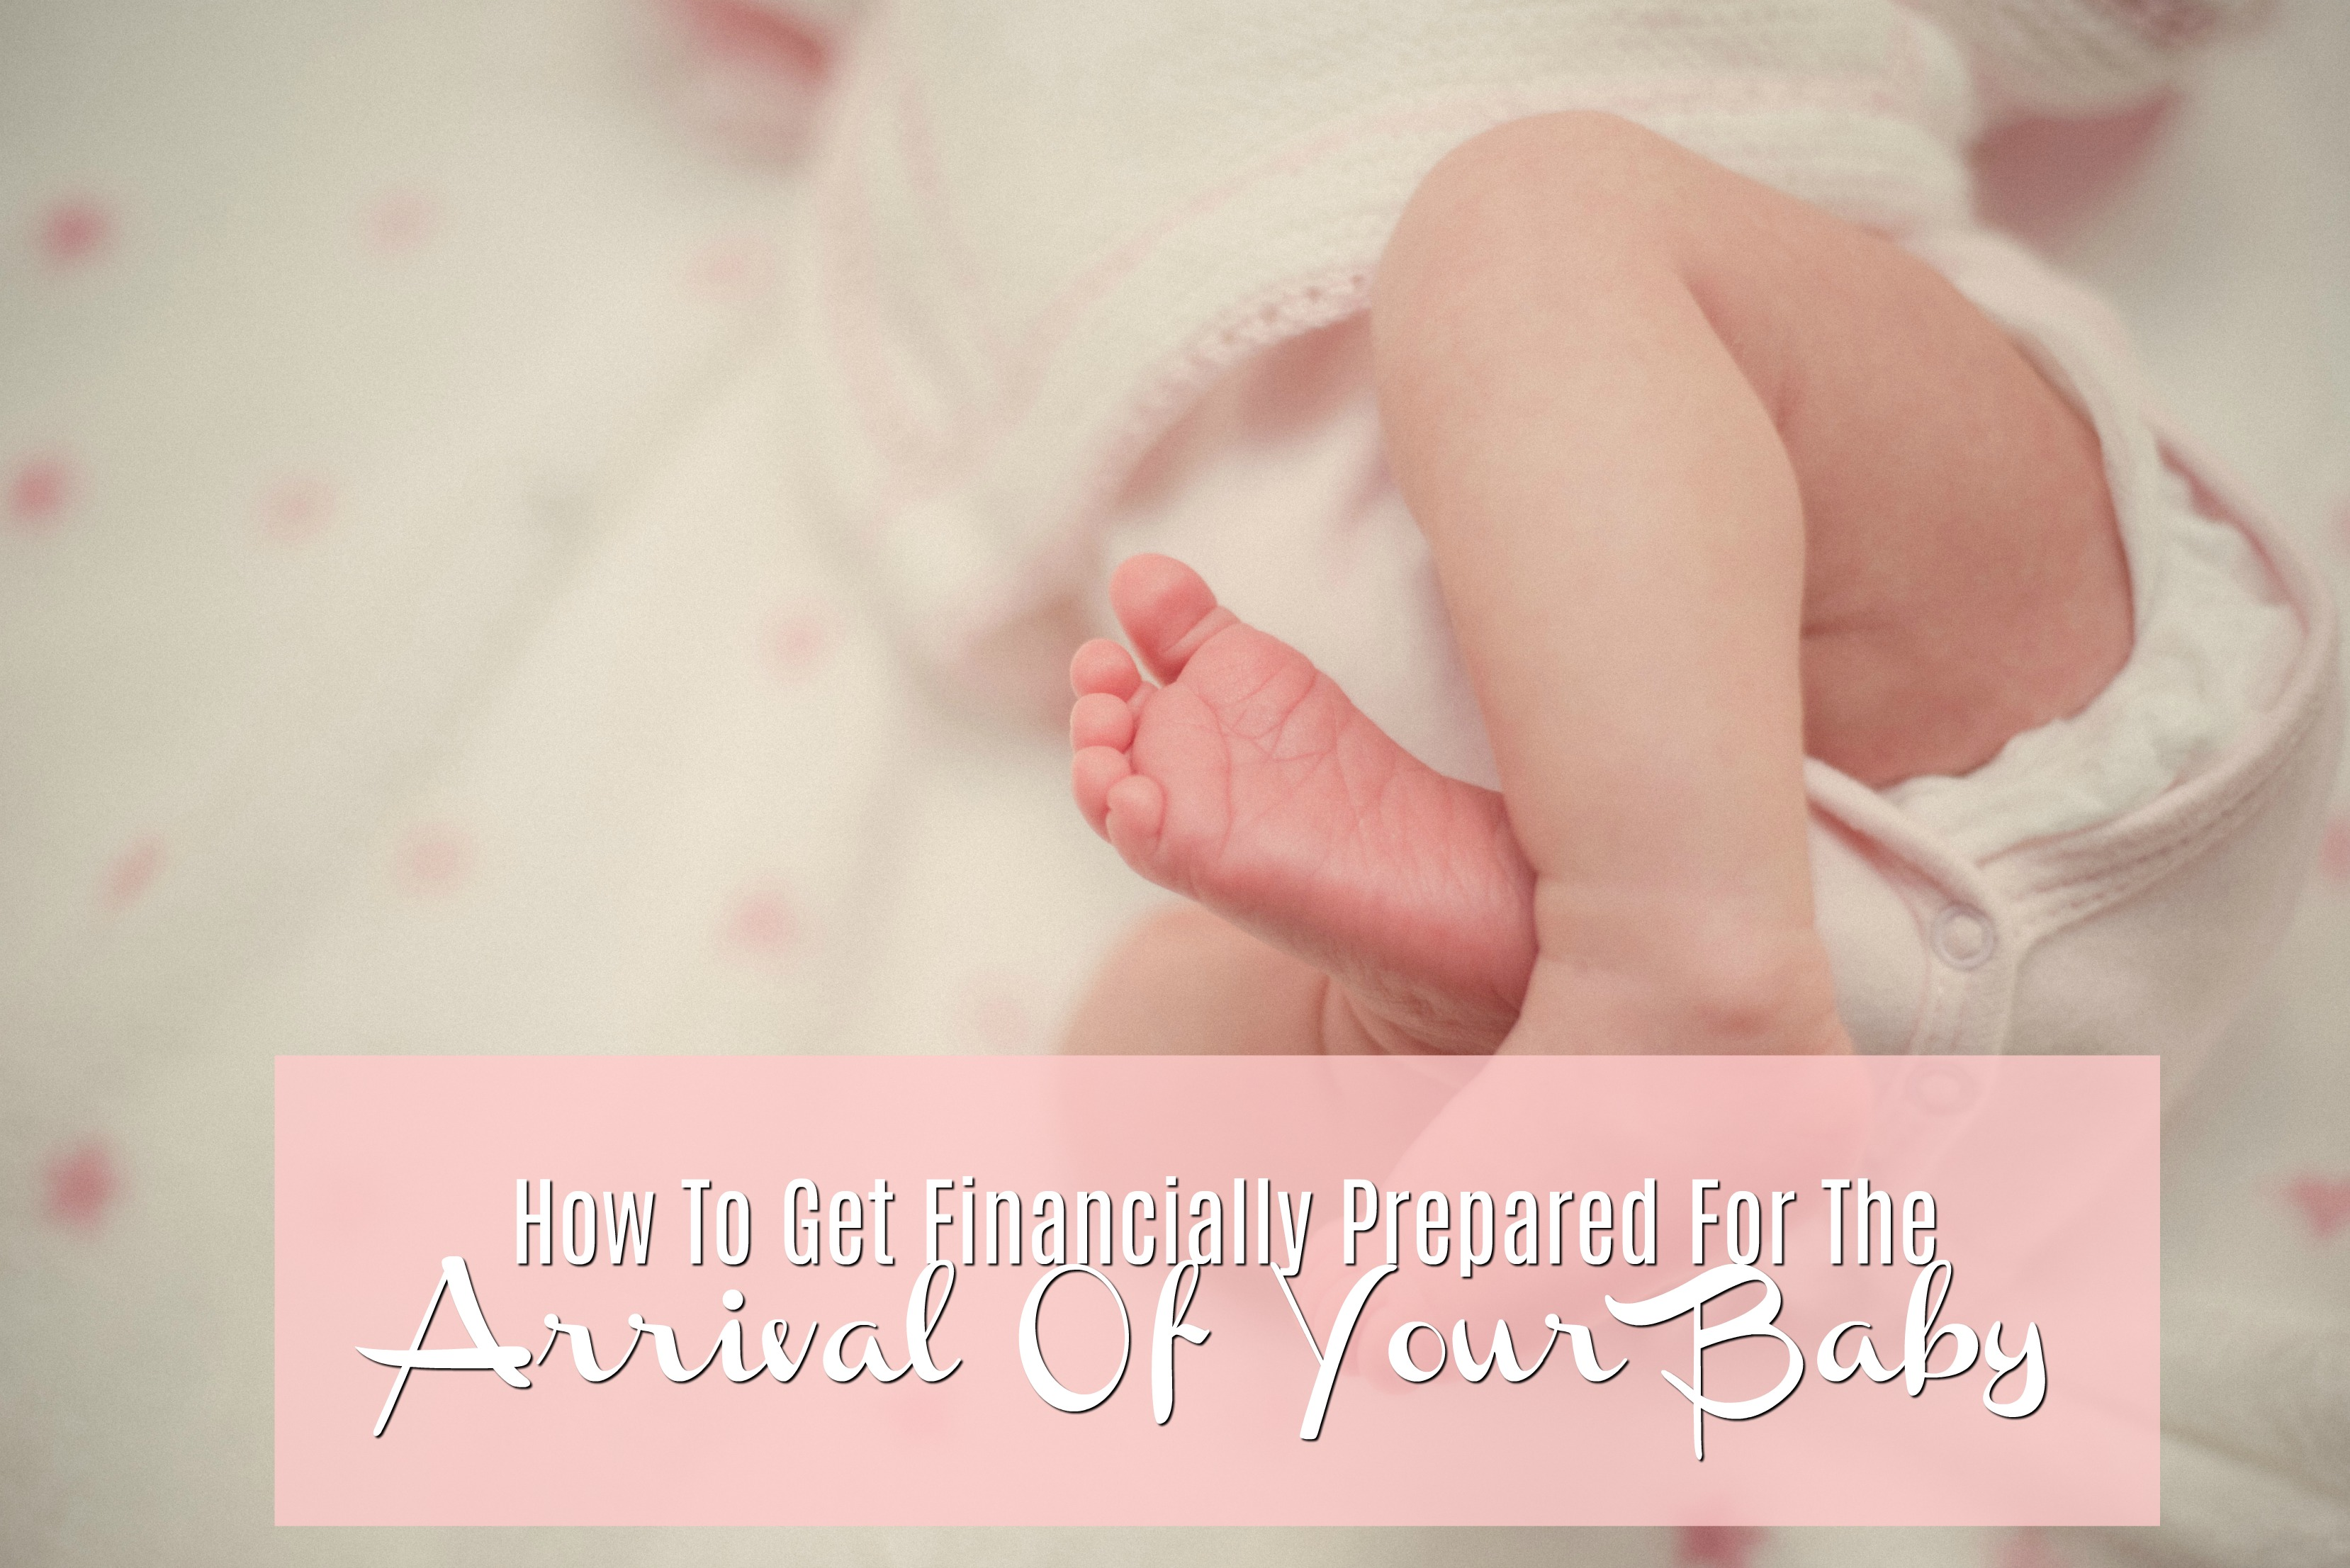 How To Get Financially Prepared For The Arrival Of Your Baby